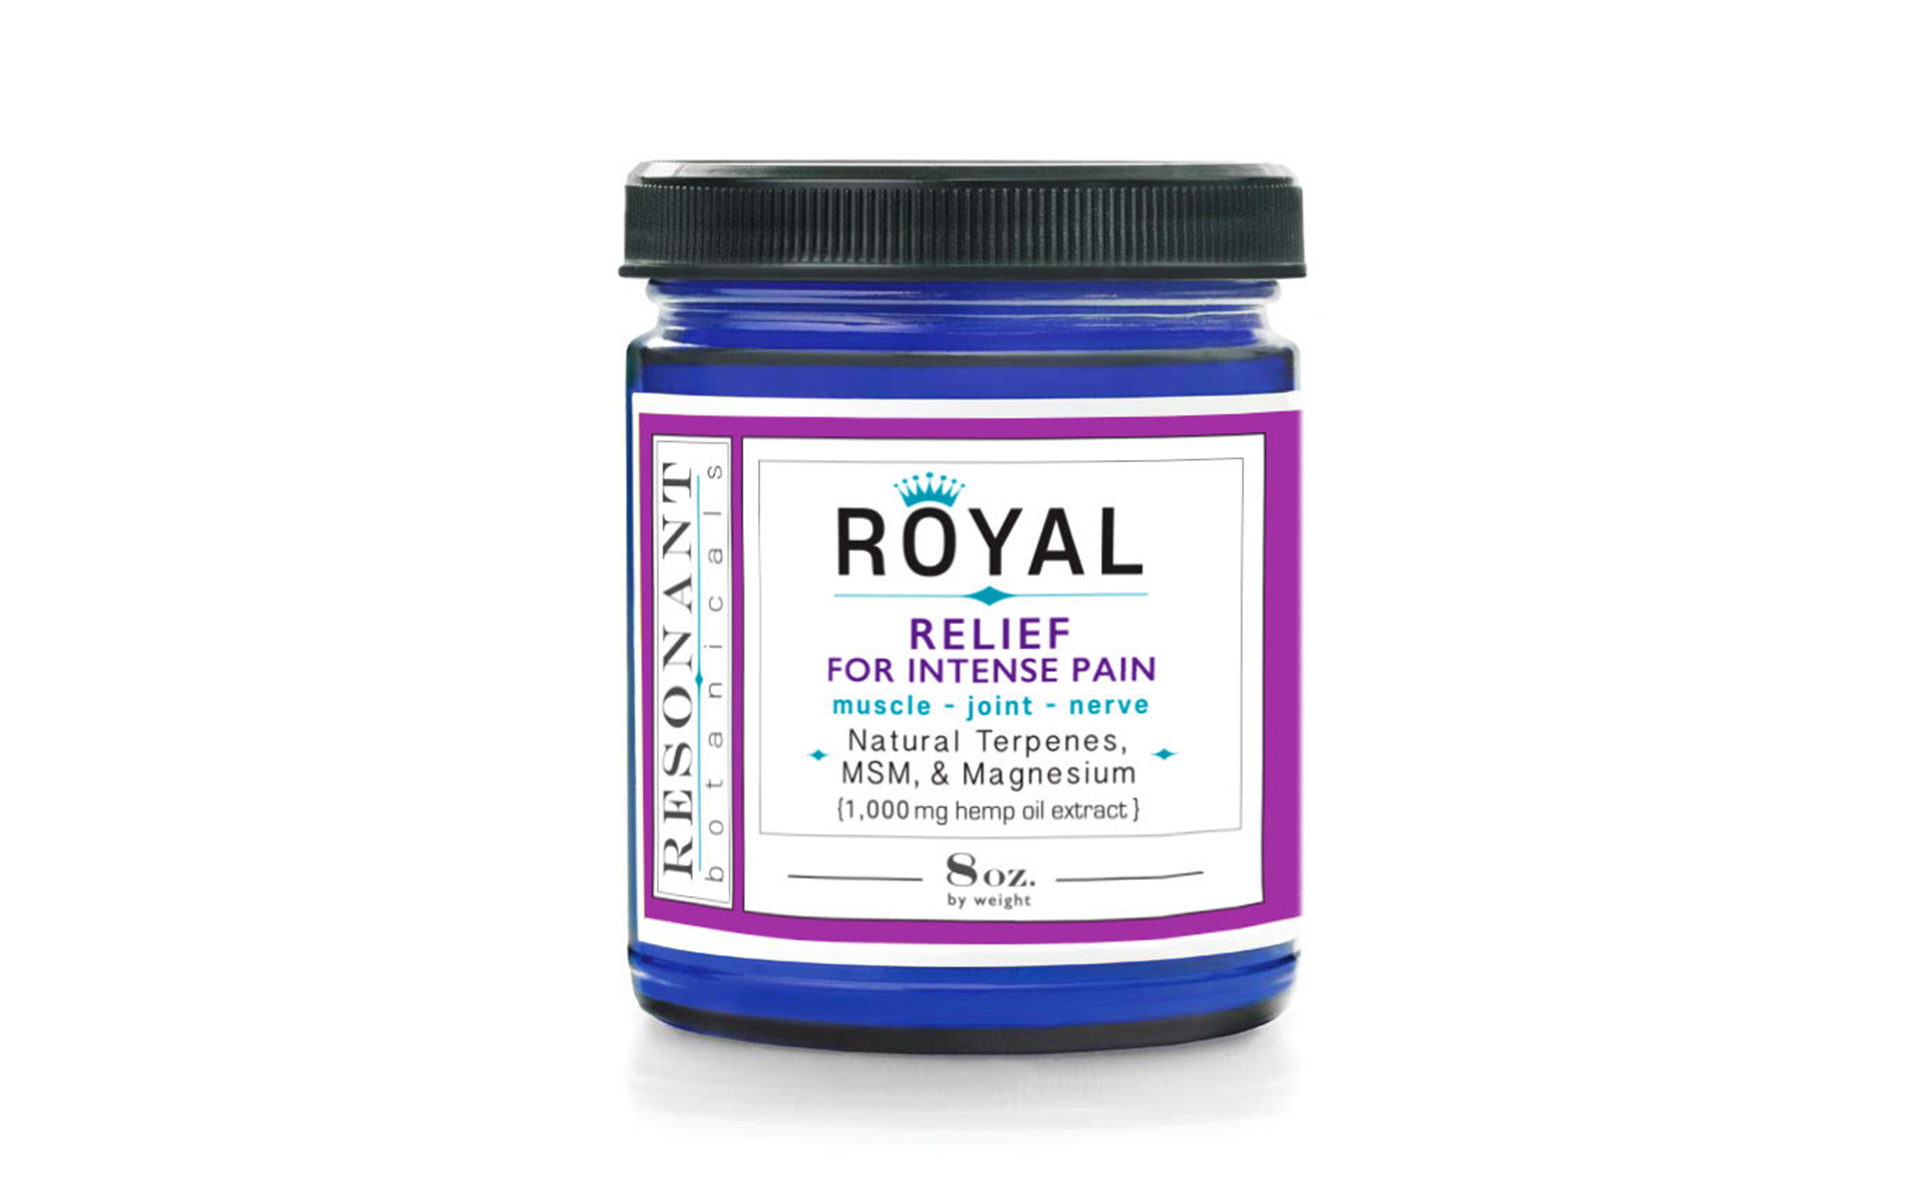 Resonant Botanical's Royal relief topical